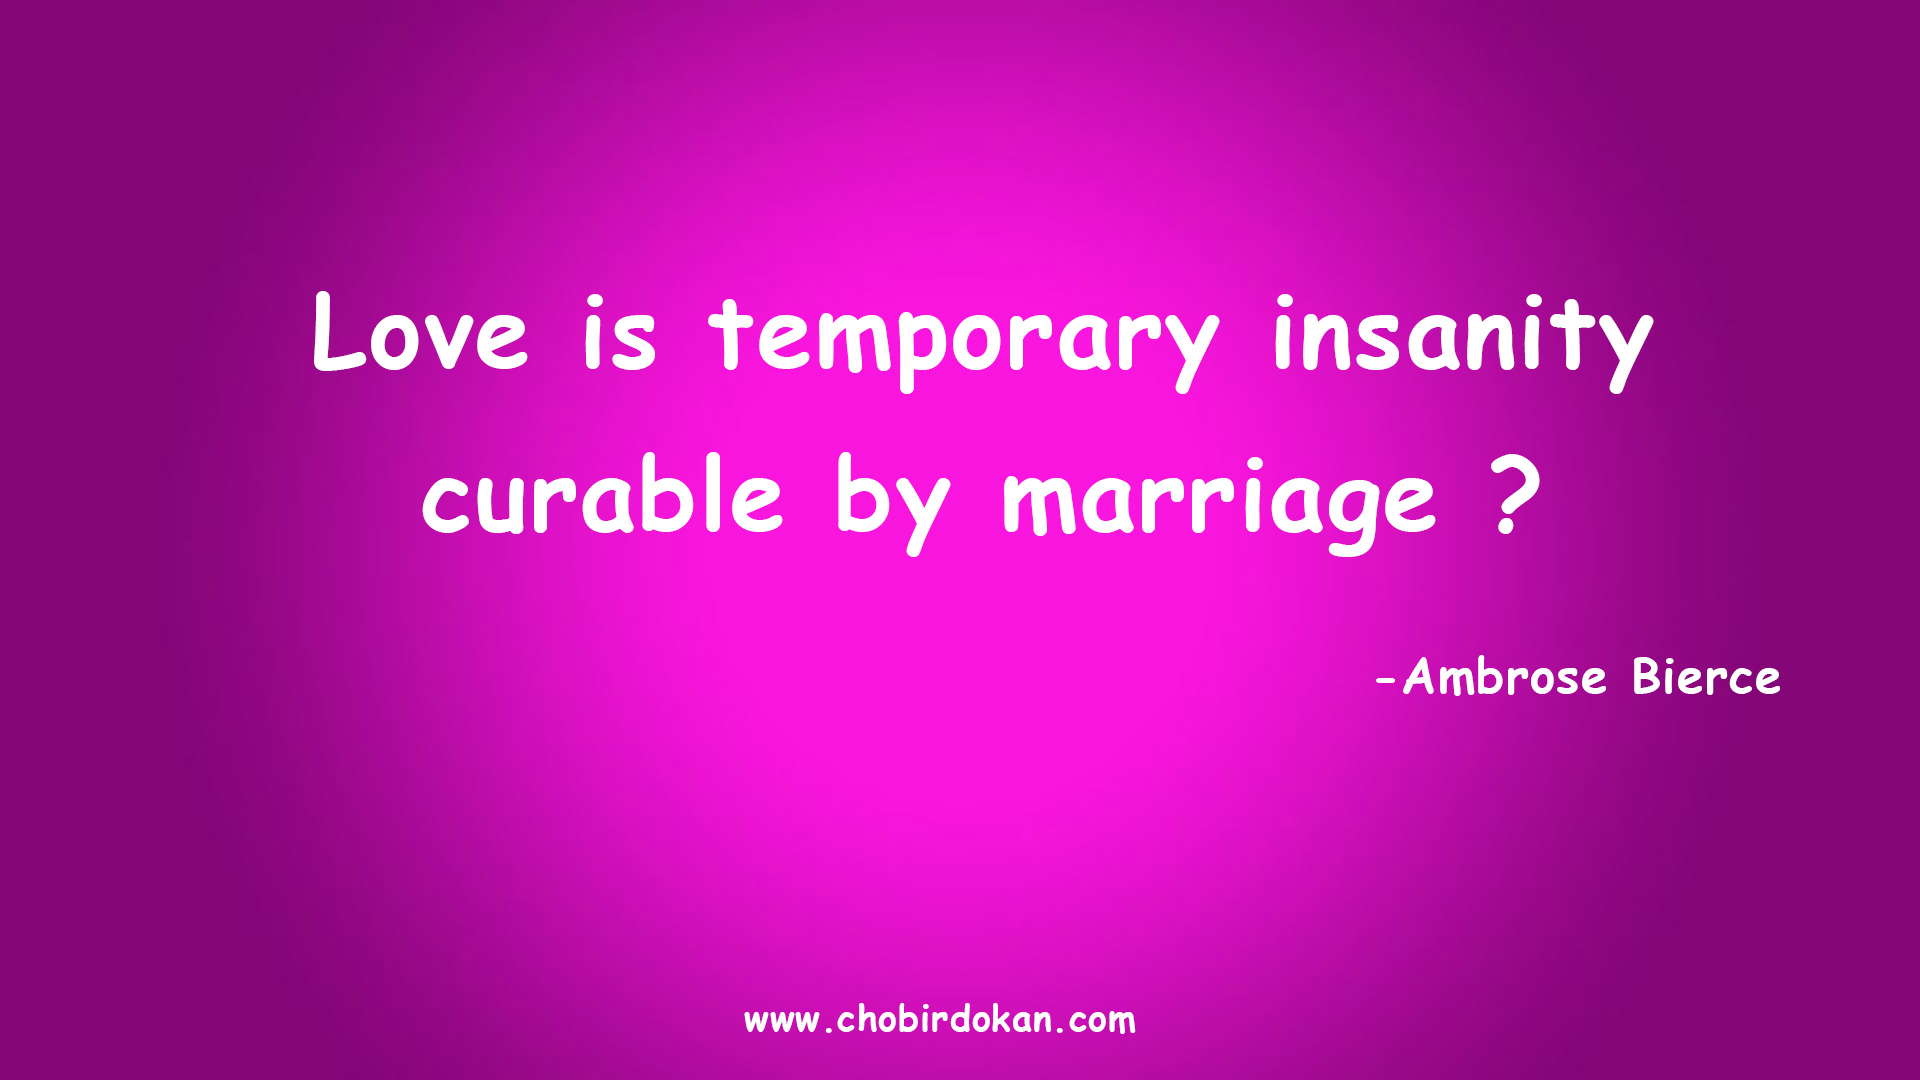 Love Marriage Quotes Funny Quotes Love Marriage  Dobre For